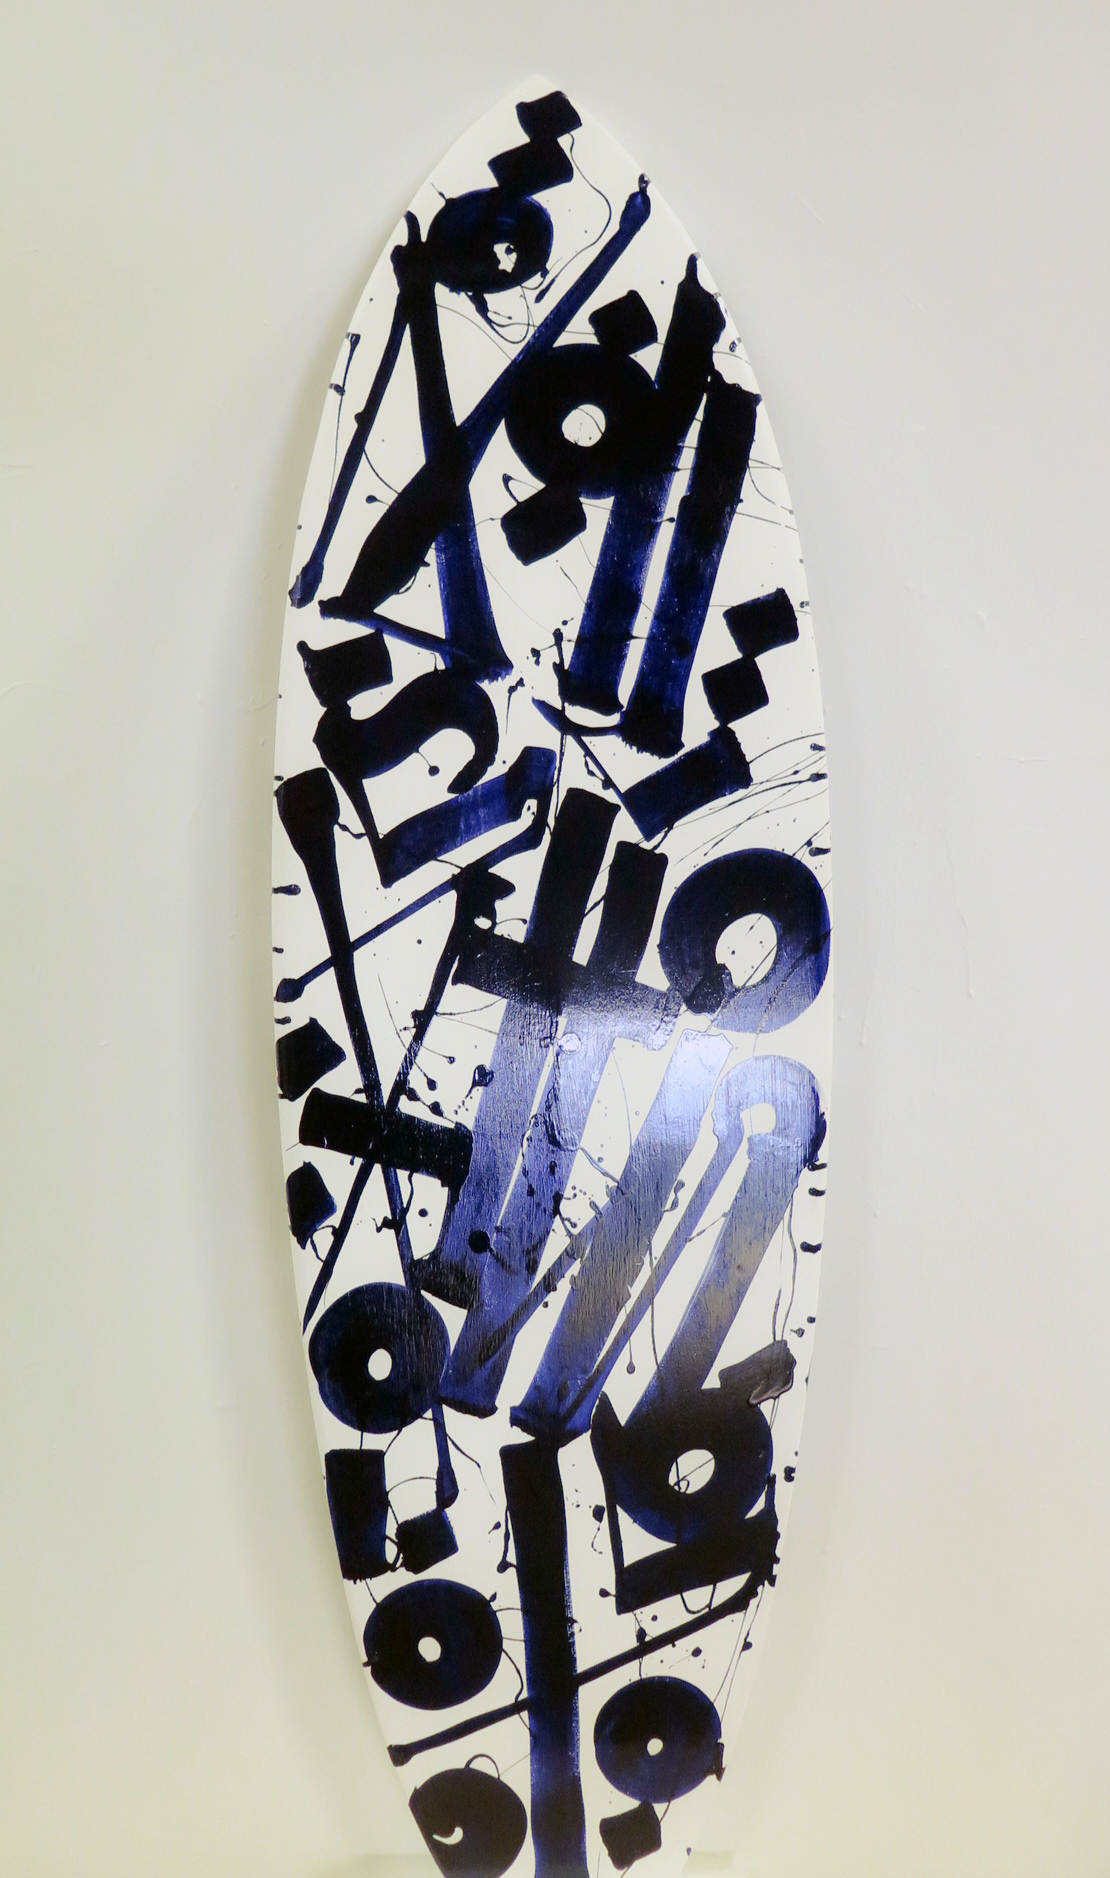 Retna for Juxtapoz x Chandran Gallery x Univ Benefit Auction for Waves for Water: photo 2.JPG